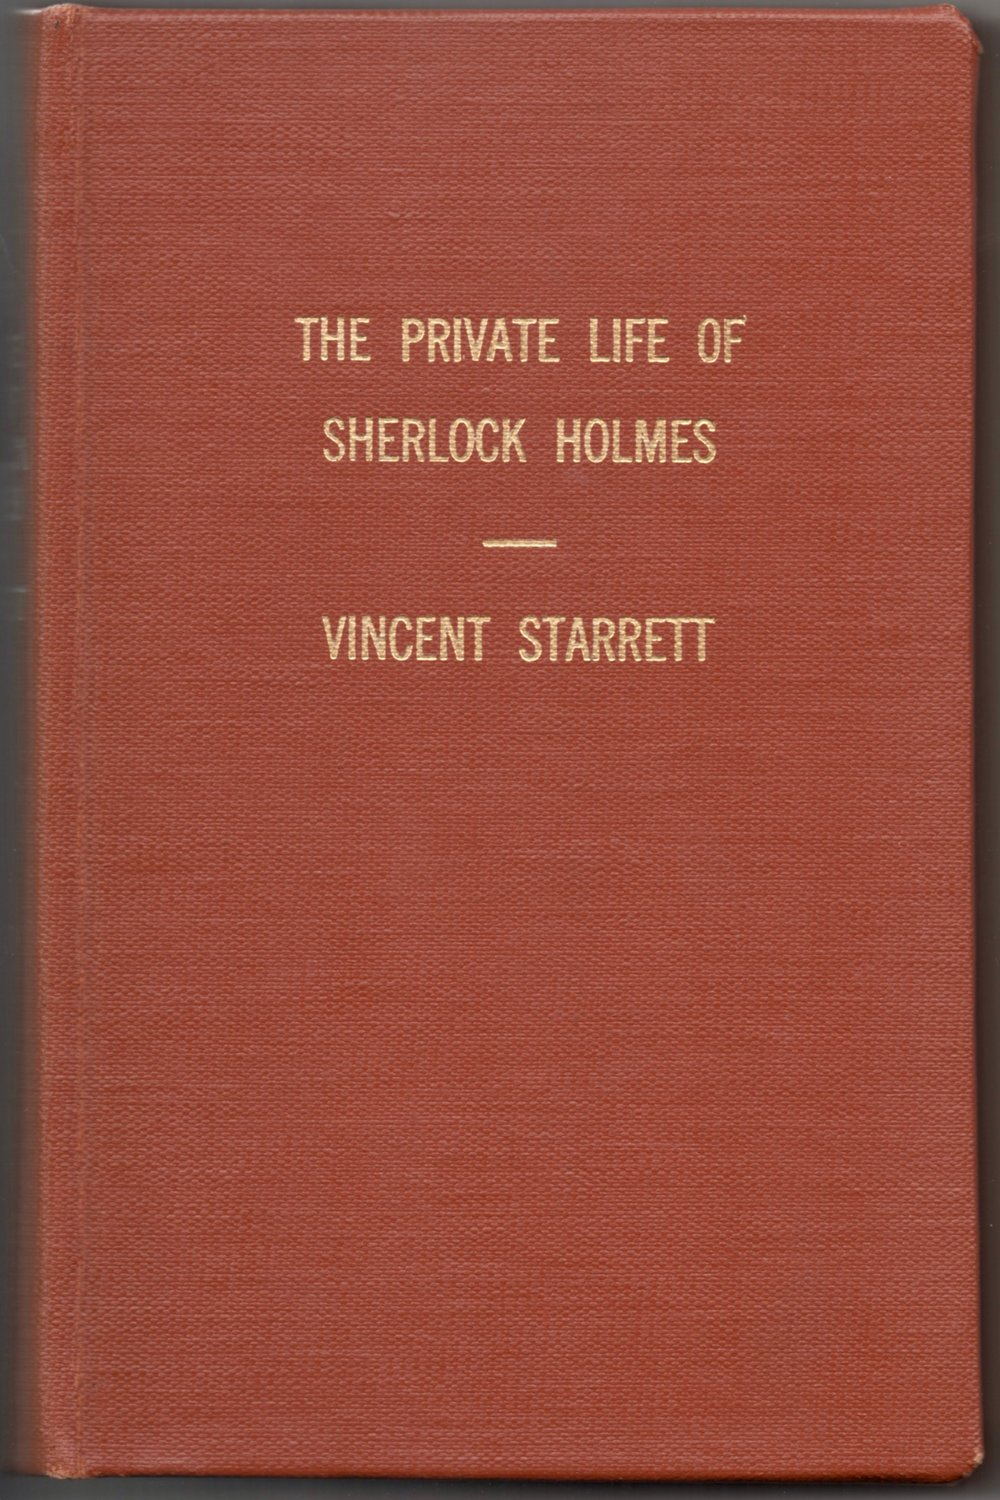 The cover to a rare, bound copy of the 1979 reproduction. I don't know who had this volume bound, but I am grateful for the opportunity to look inside.